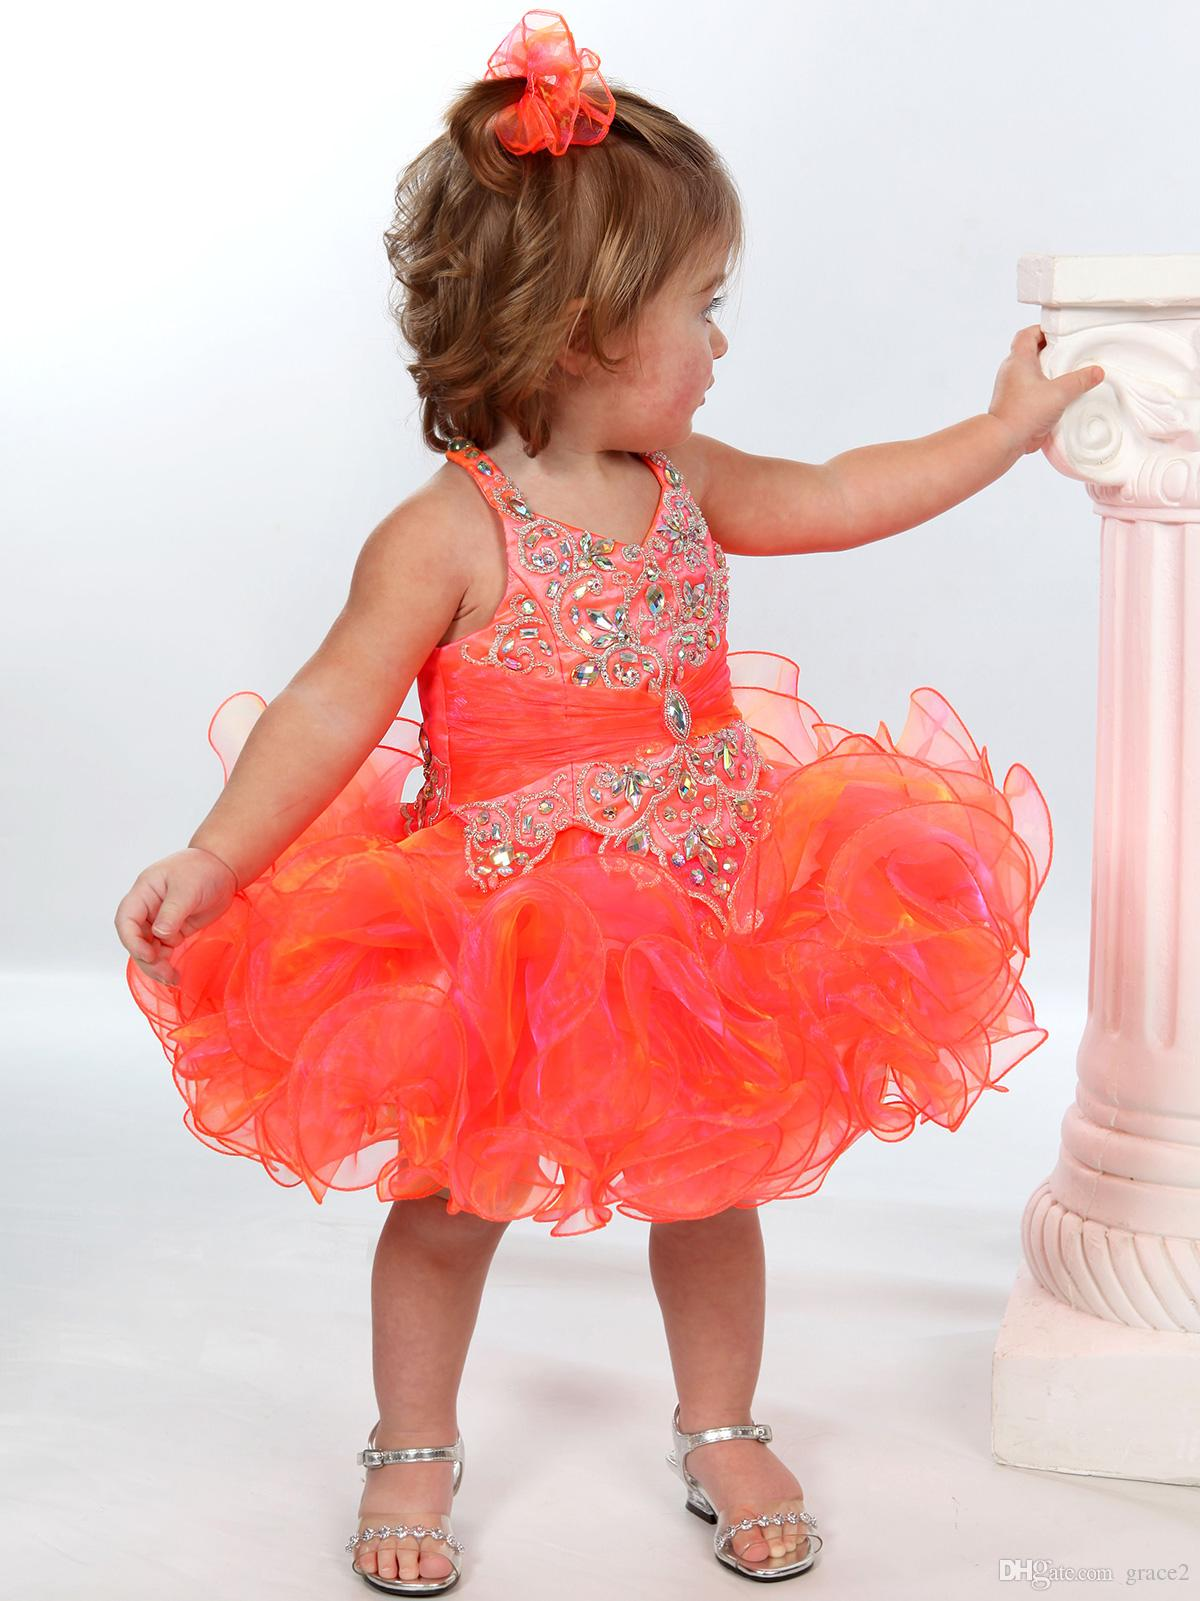 99c7976f52 Toddler Glitz Pageant Dresses 2017 With Beaded Halter Neck And Tutu Skirt  Orange Girls Christmas Dresses Custom Made Pageant Dresses For Teenagers  Pageant ...